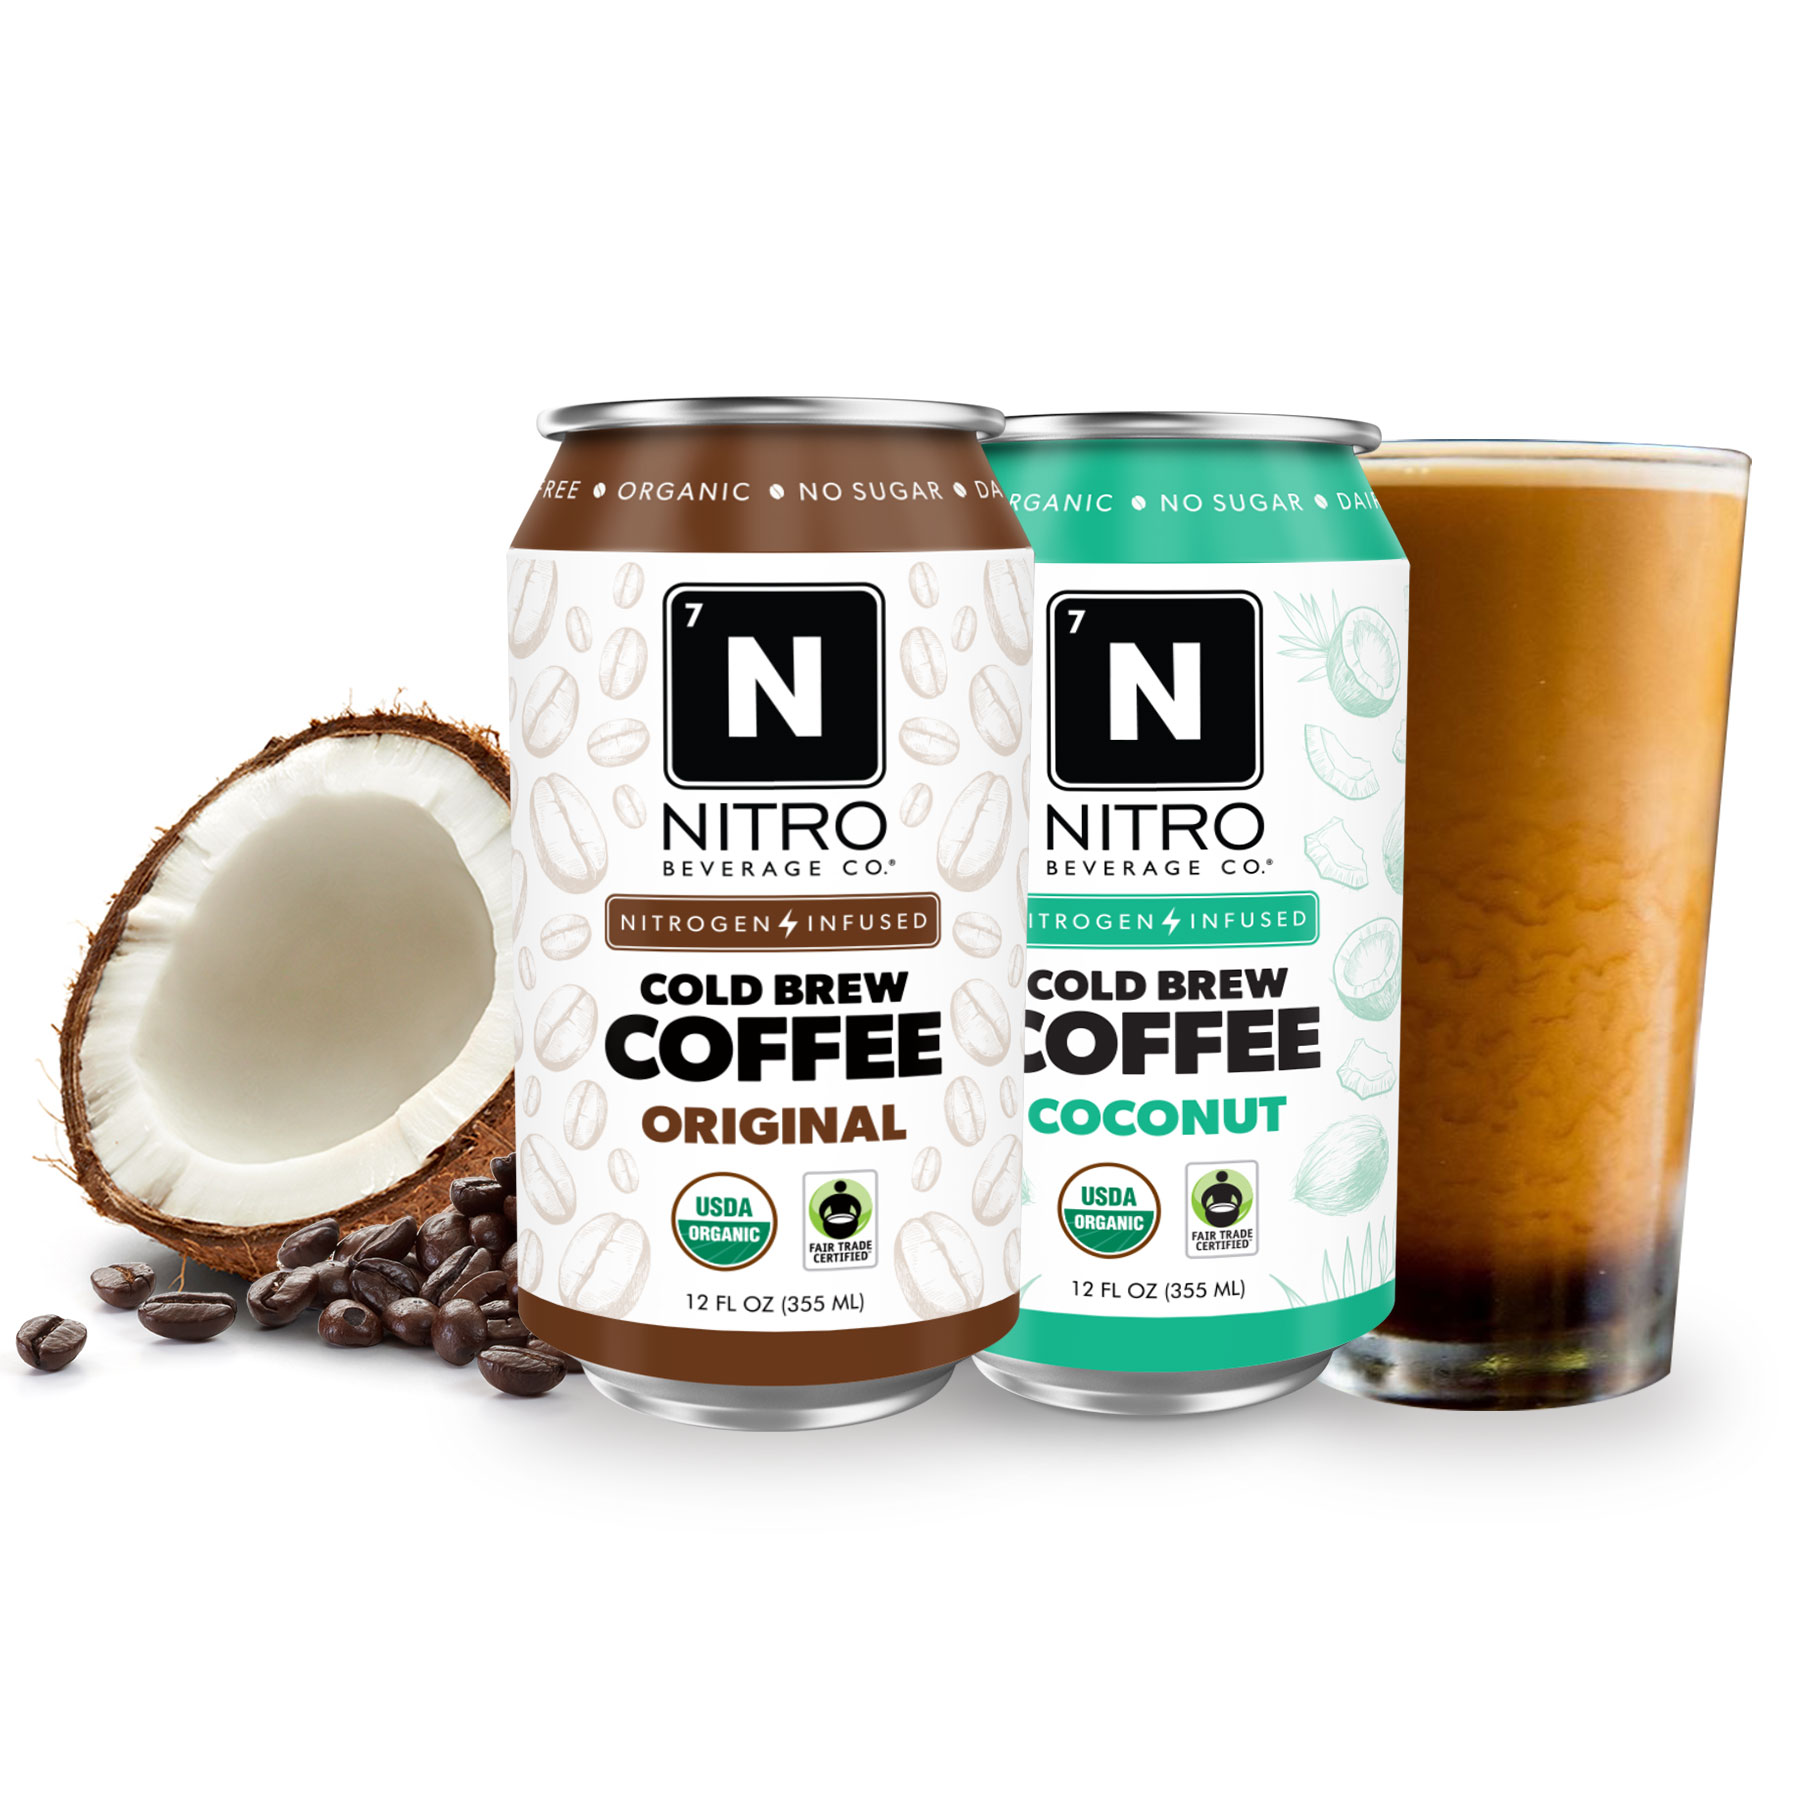 Nitro Beverage  From humble beginnings selling coffee on a bicycle to now being a national beverage company. The NITRO Beverage Co. story is the true entrepreneurial dream. Nitro is defining a new and sustainable segment for the beverage industry: Nitrogen-Infused beverages! The main benefits of infusing a beverage with nitrogen are that it creates this beautiful cascade, a naturally sweet & creamy texture, and a silky smooth finish. It's truly an unforgettable drinking experience.